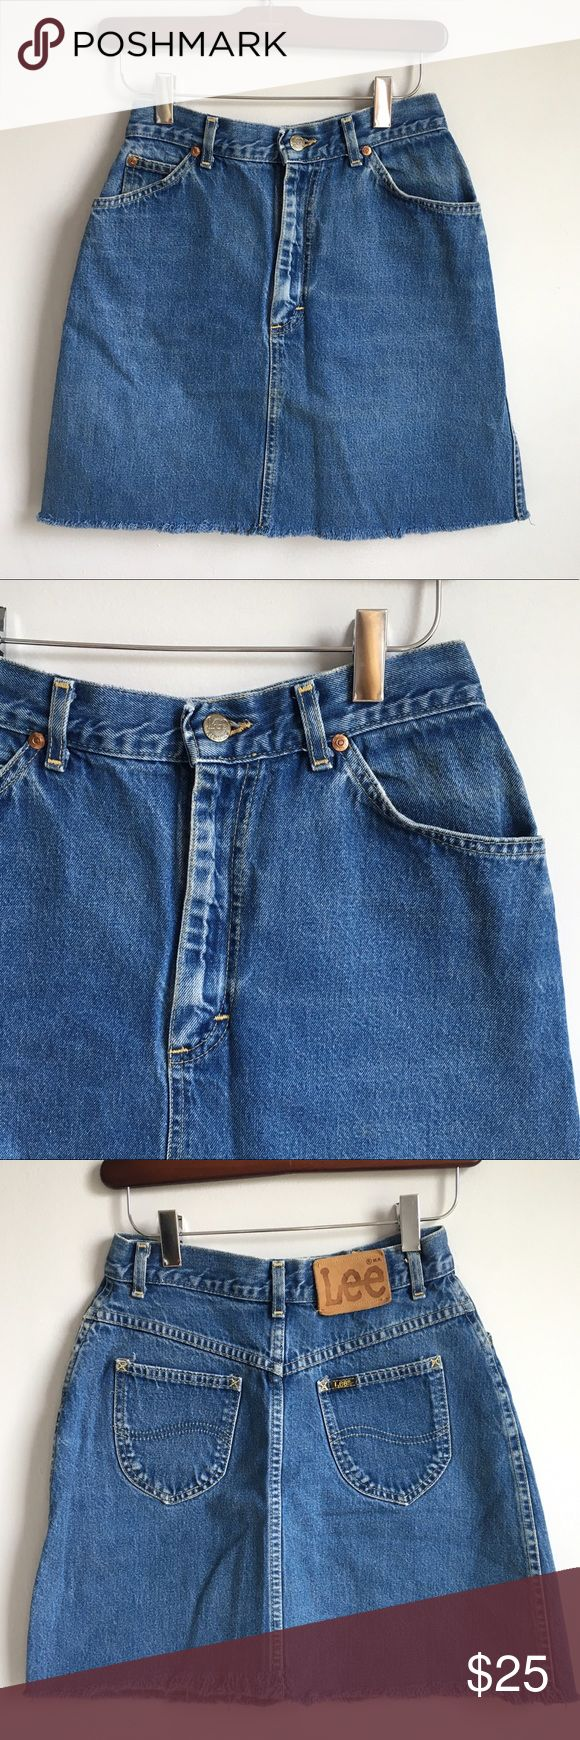 vintage 80s lee jean skirt mini denim skirt vintage 80s lee jeans skirt in a medium wash denim with a frayed raw hem. mini length & slight a-line fit. measures 13 inches across waist laying flat (26 inches doubled) and 18 total length. in good vintage condition, no stains, just gently worn. no try ons or trades. Vintage Skirts Mini